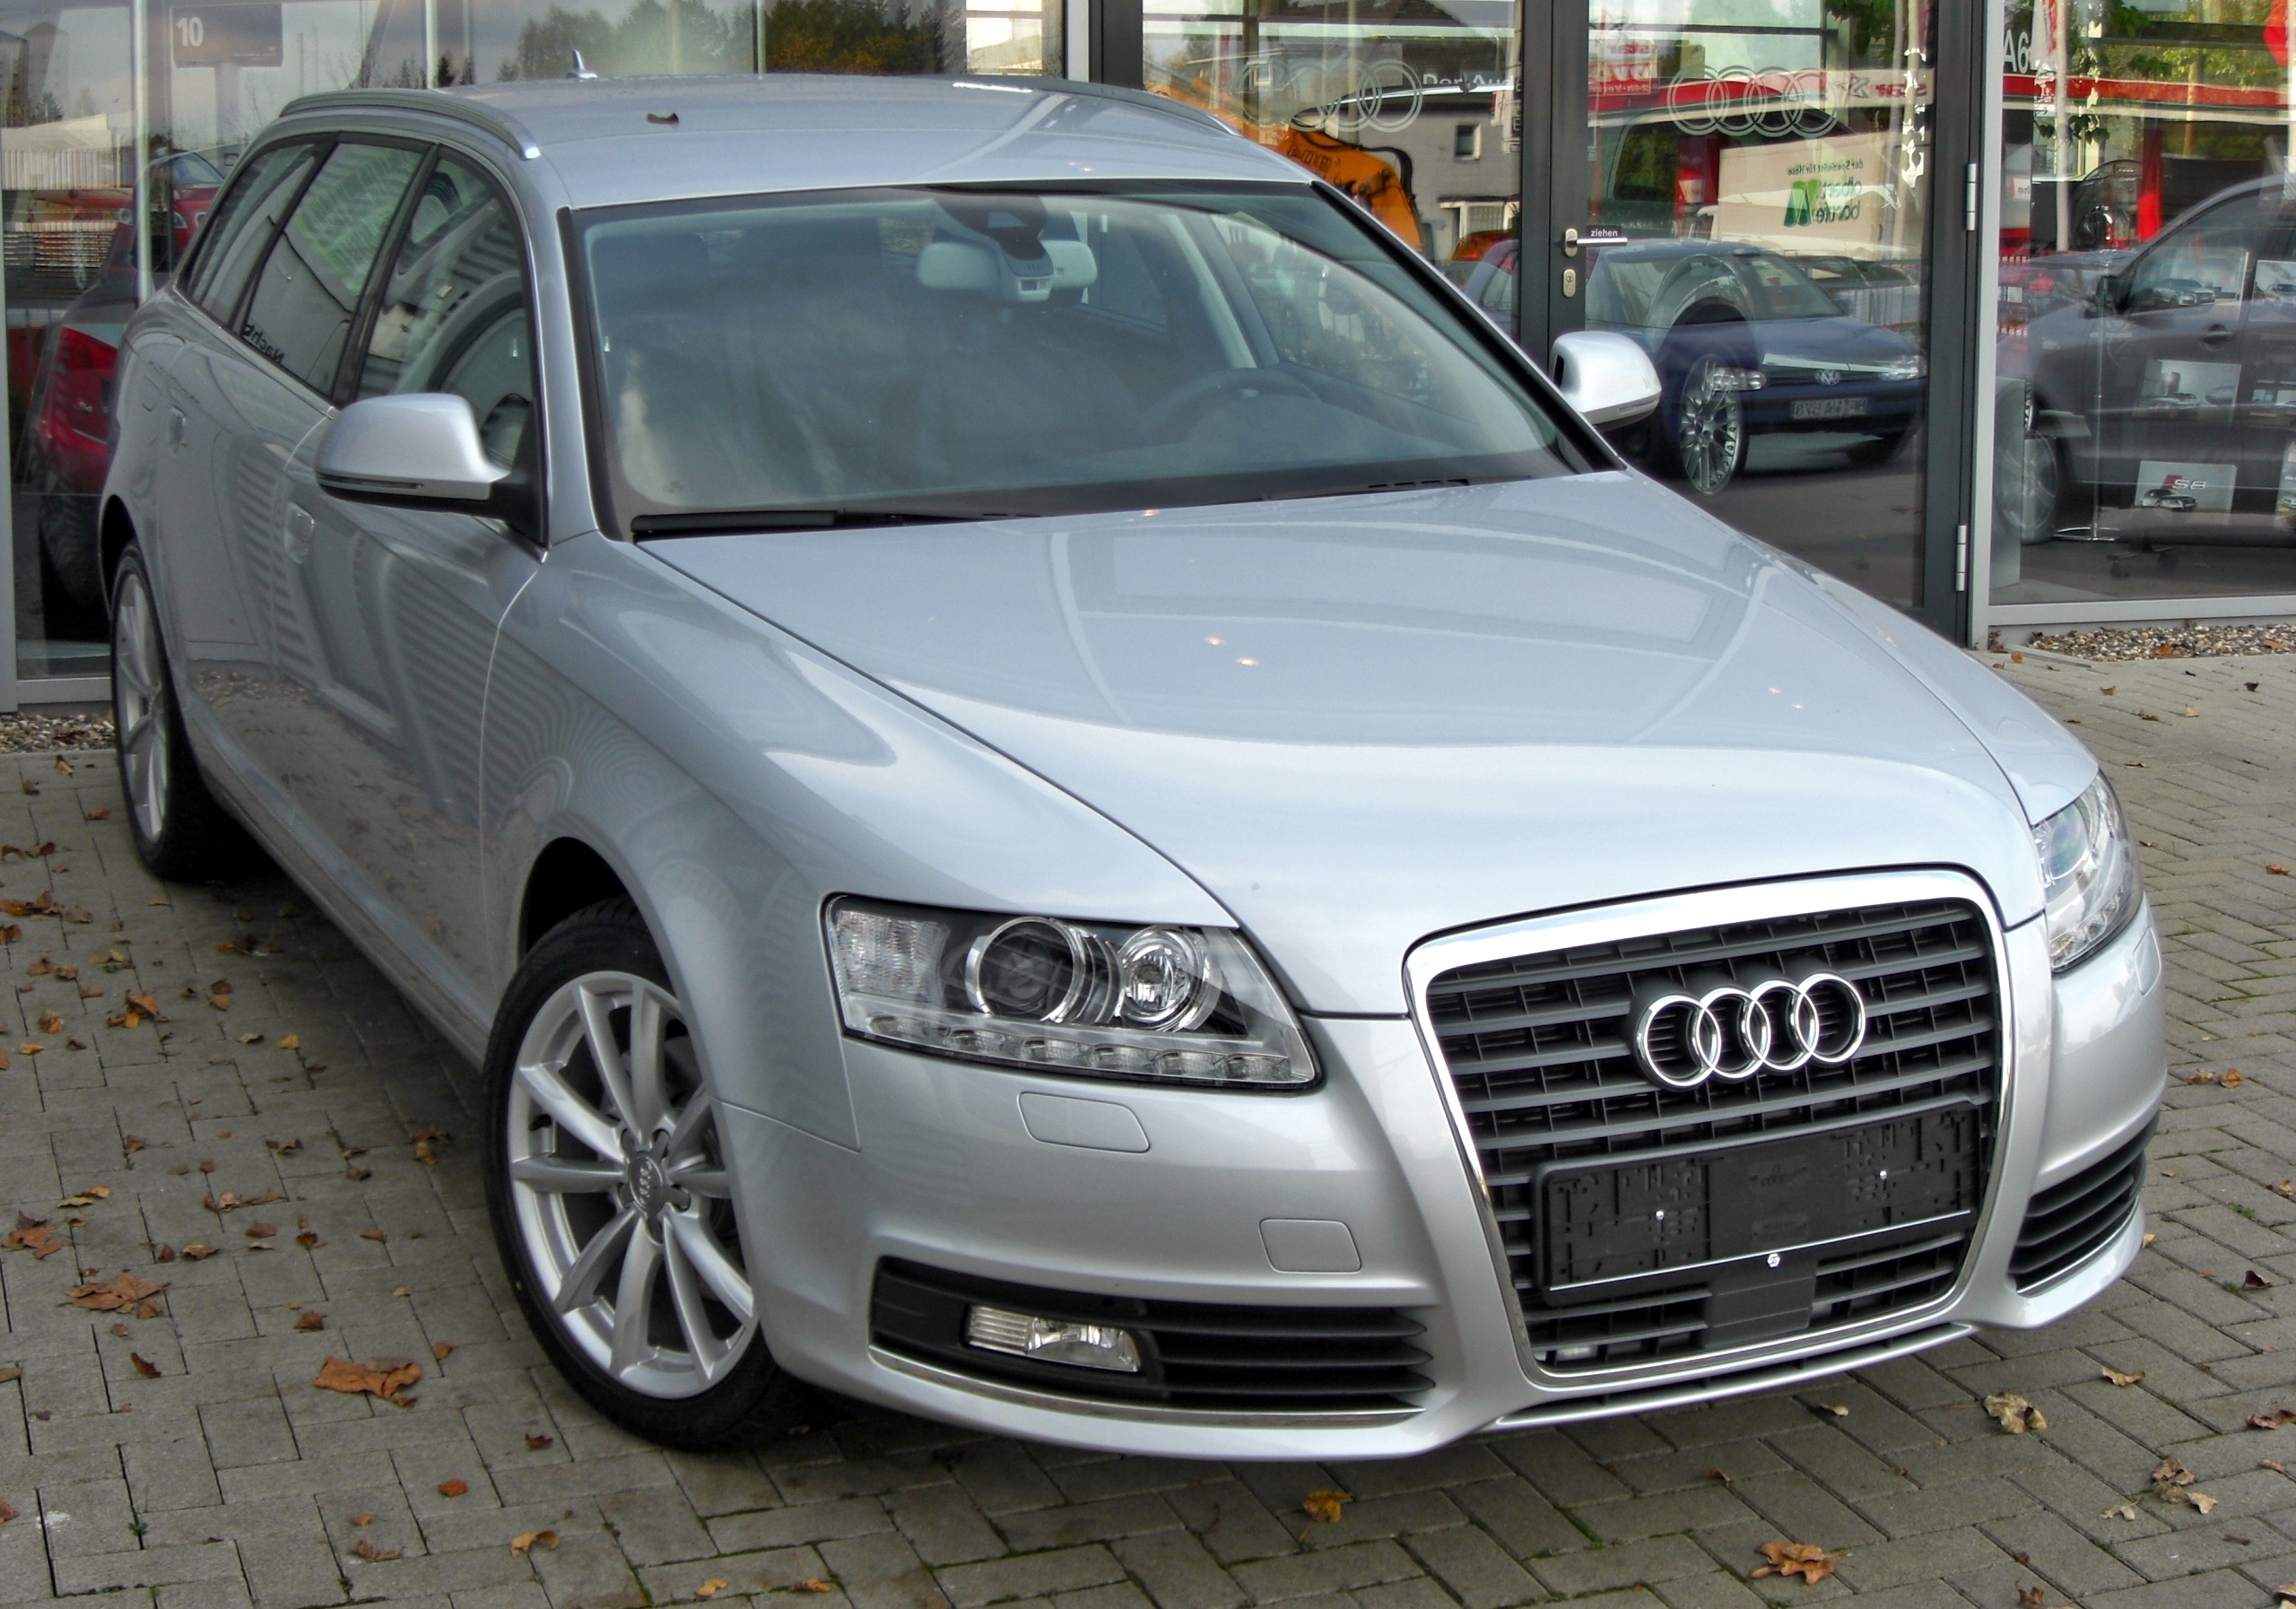 file audi a6 c6 avant facelift front 1 jpg wikimedia commons. Black Bedroom Furniture Sets. Home Design Ideas